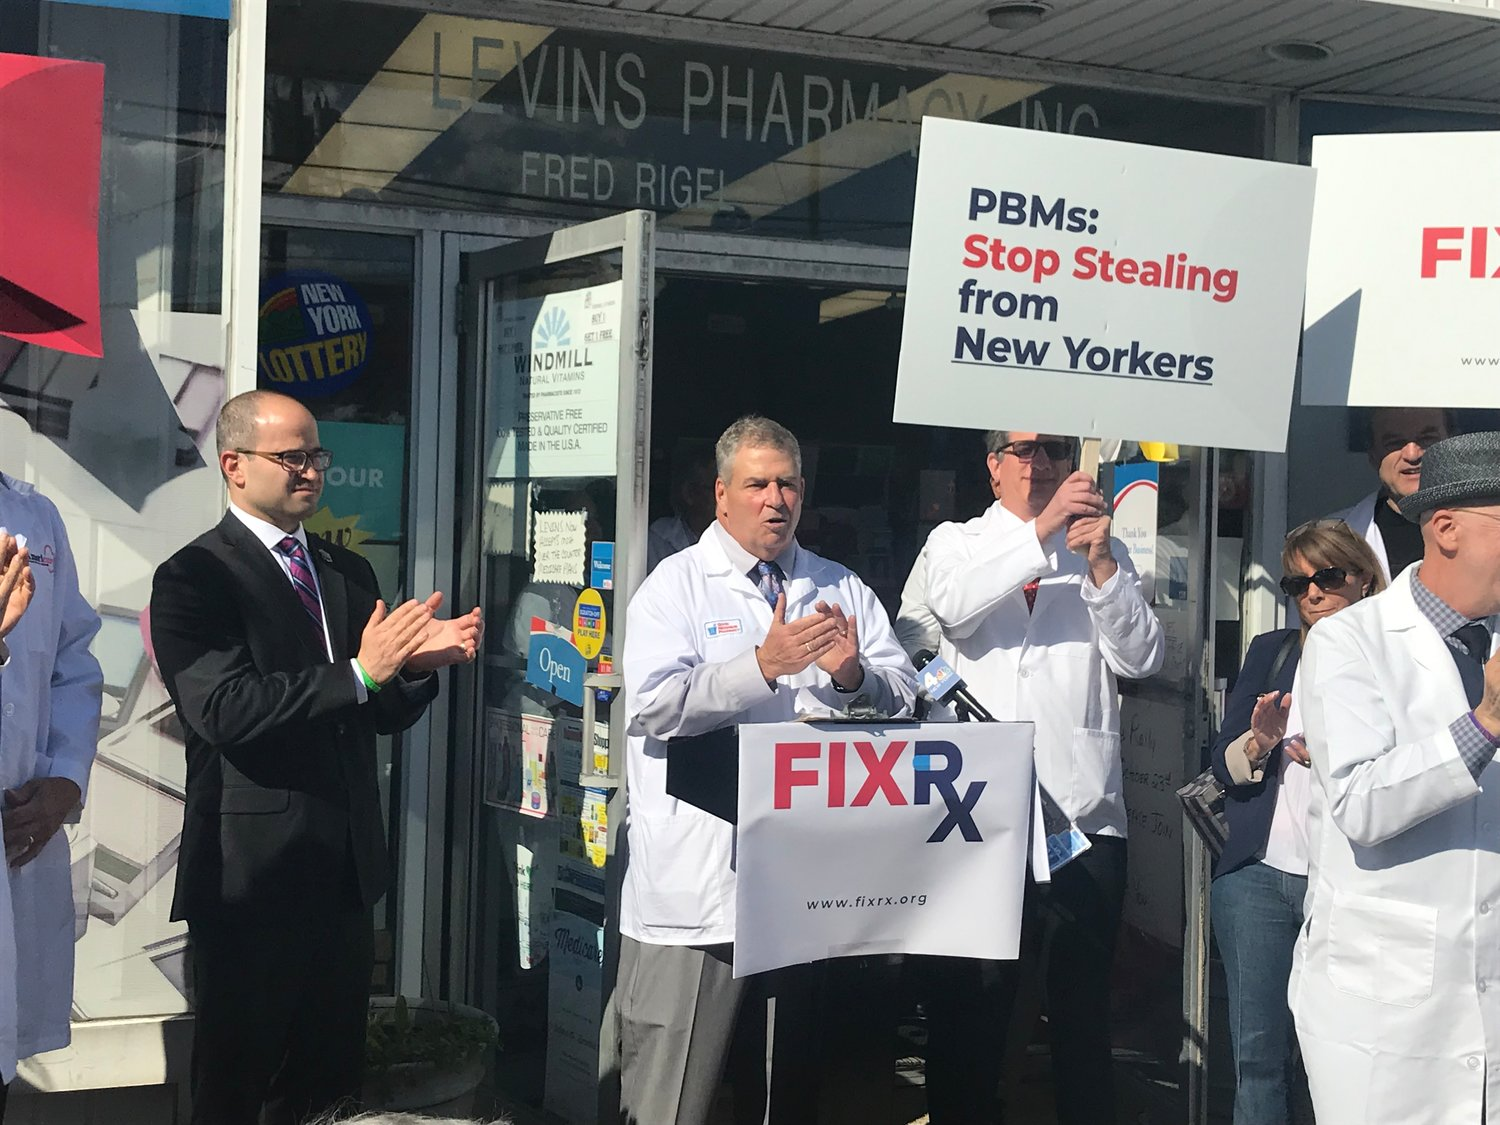 Levin's Pharmacy in Oceanside hosted a rally on Oct. 23, urging Gov. Andrew Cuomo to sign a bill that would have restricted the power that pharmacy benefit managers have over small businesses. Cuomo vetoed the legislation on Dec. 26.